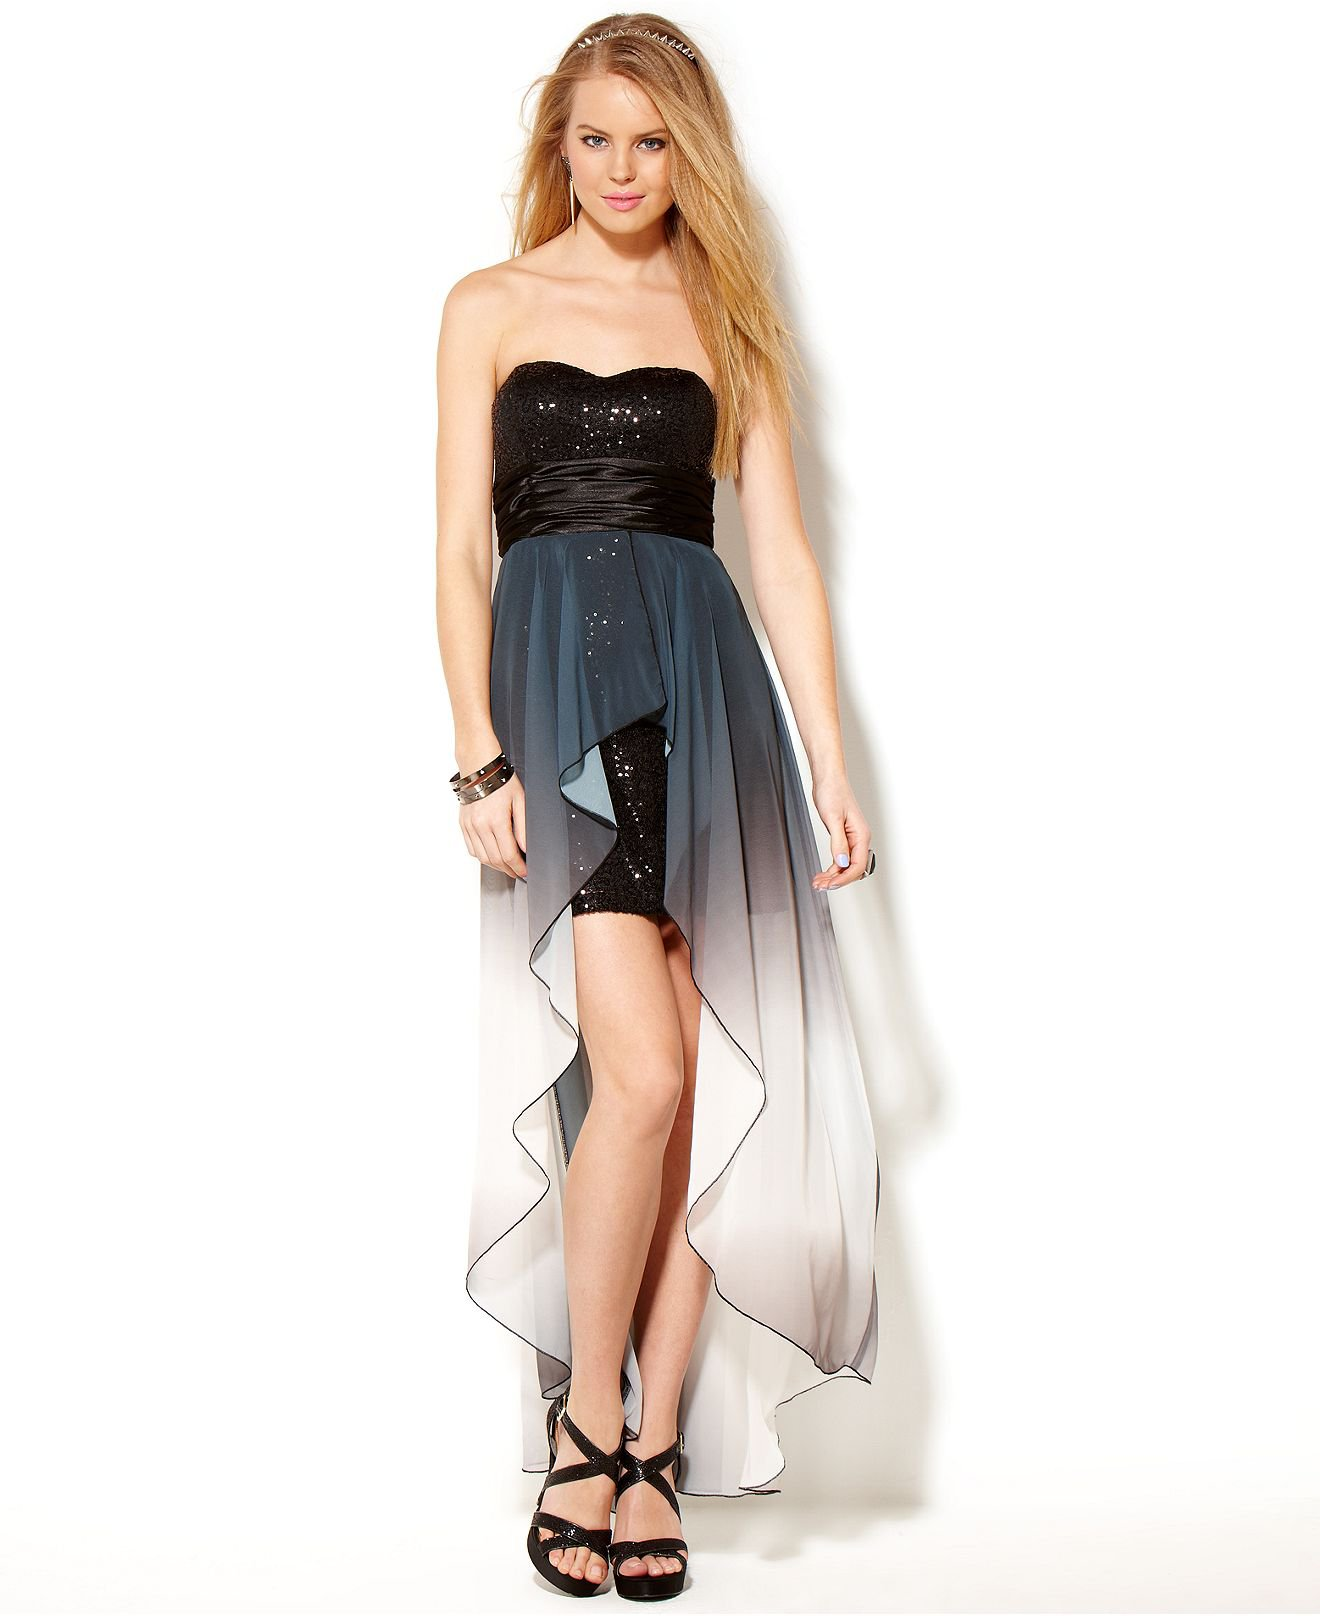 Macys Prom Dresses Short Gown And Dress Gallery